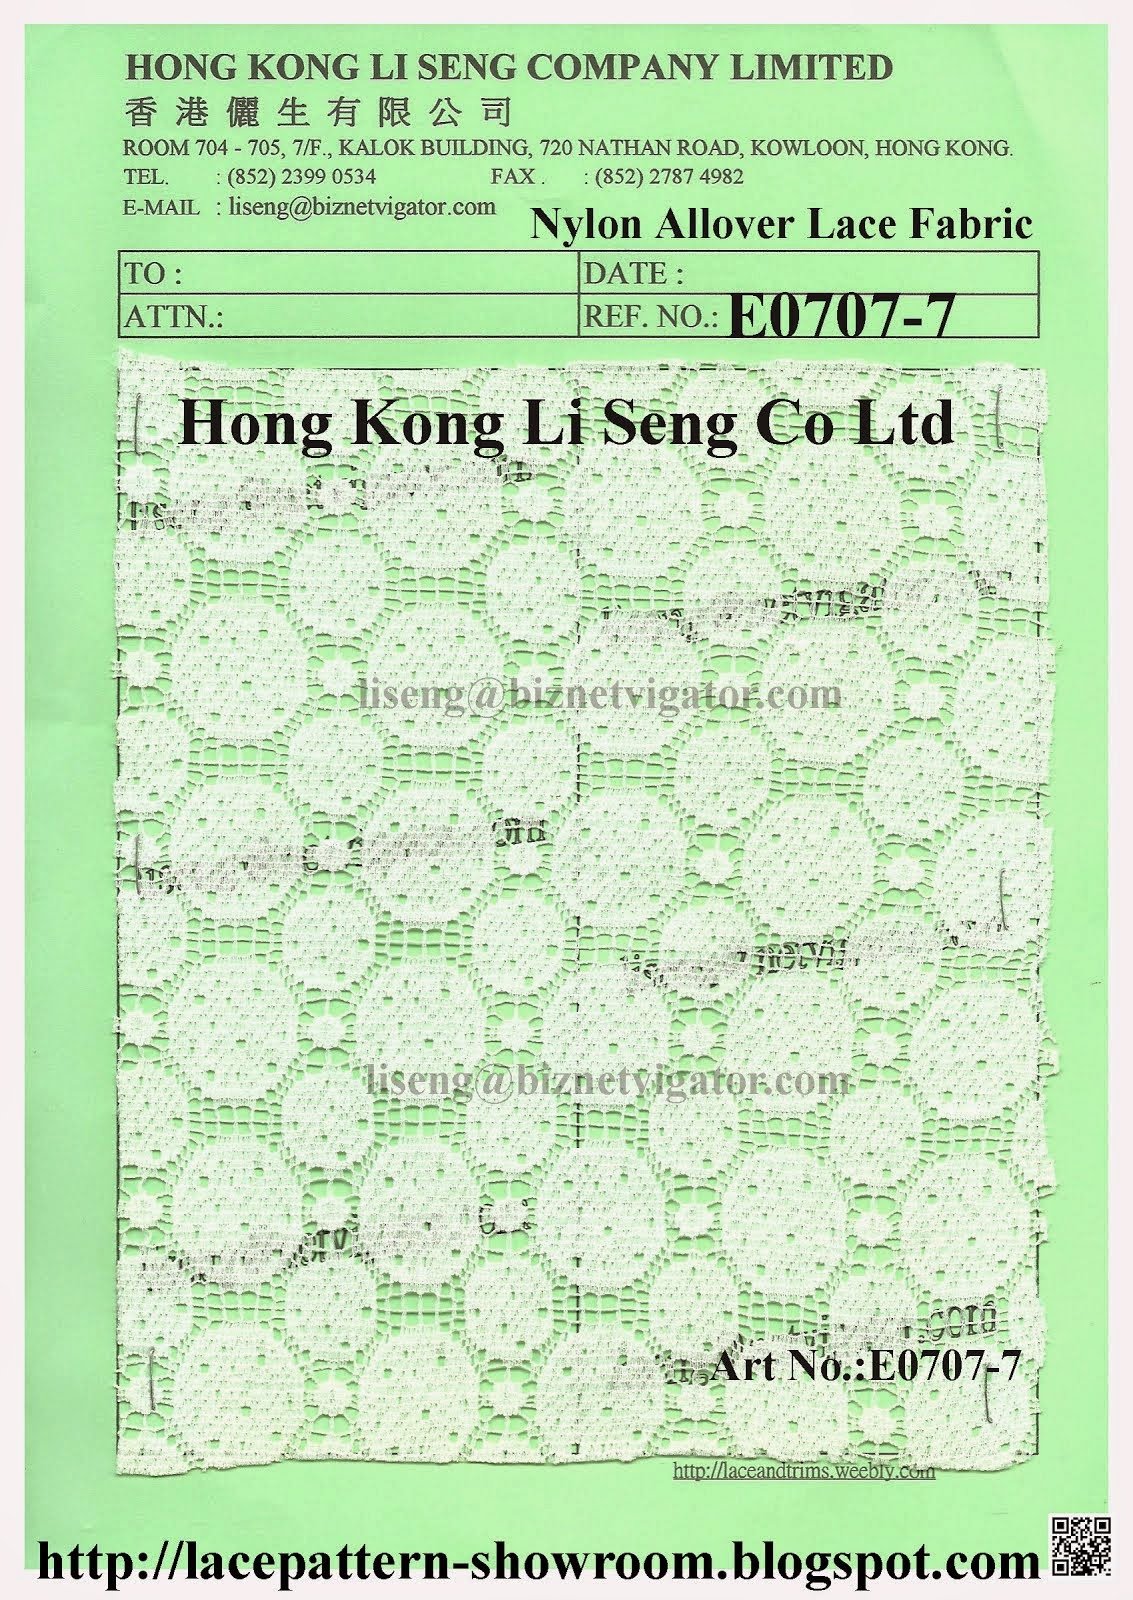 Nylon Allover Lace Fabric Manufacturer Wholesale and Supplier - Hong Kong Li Seng Co Ltd